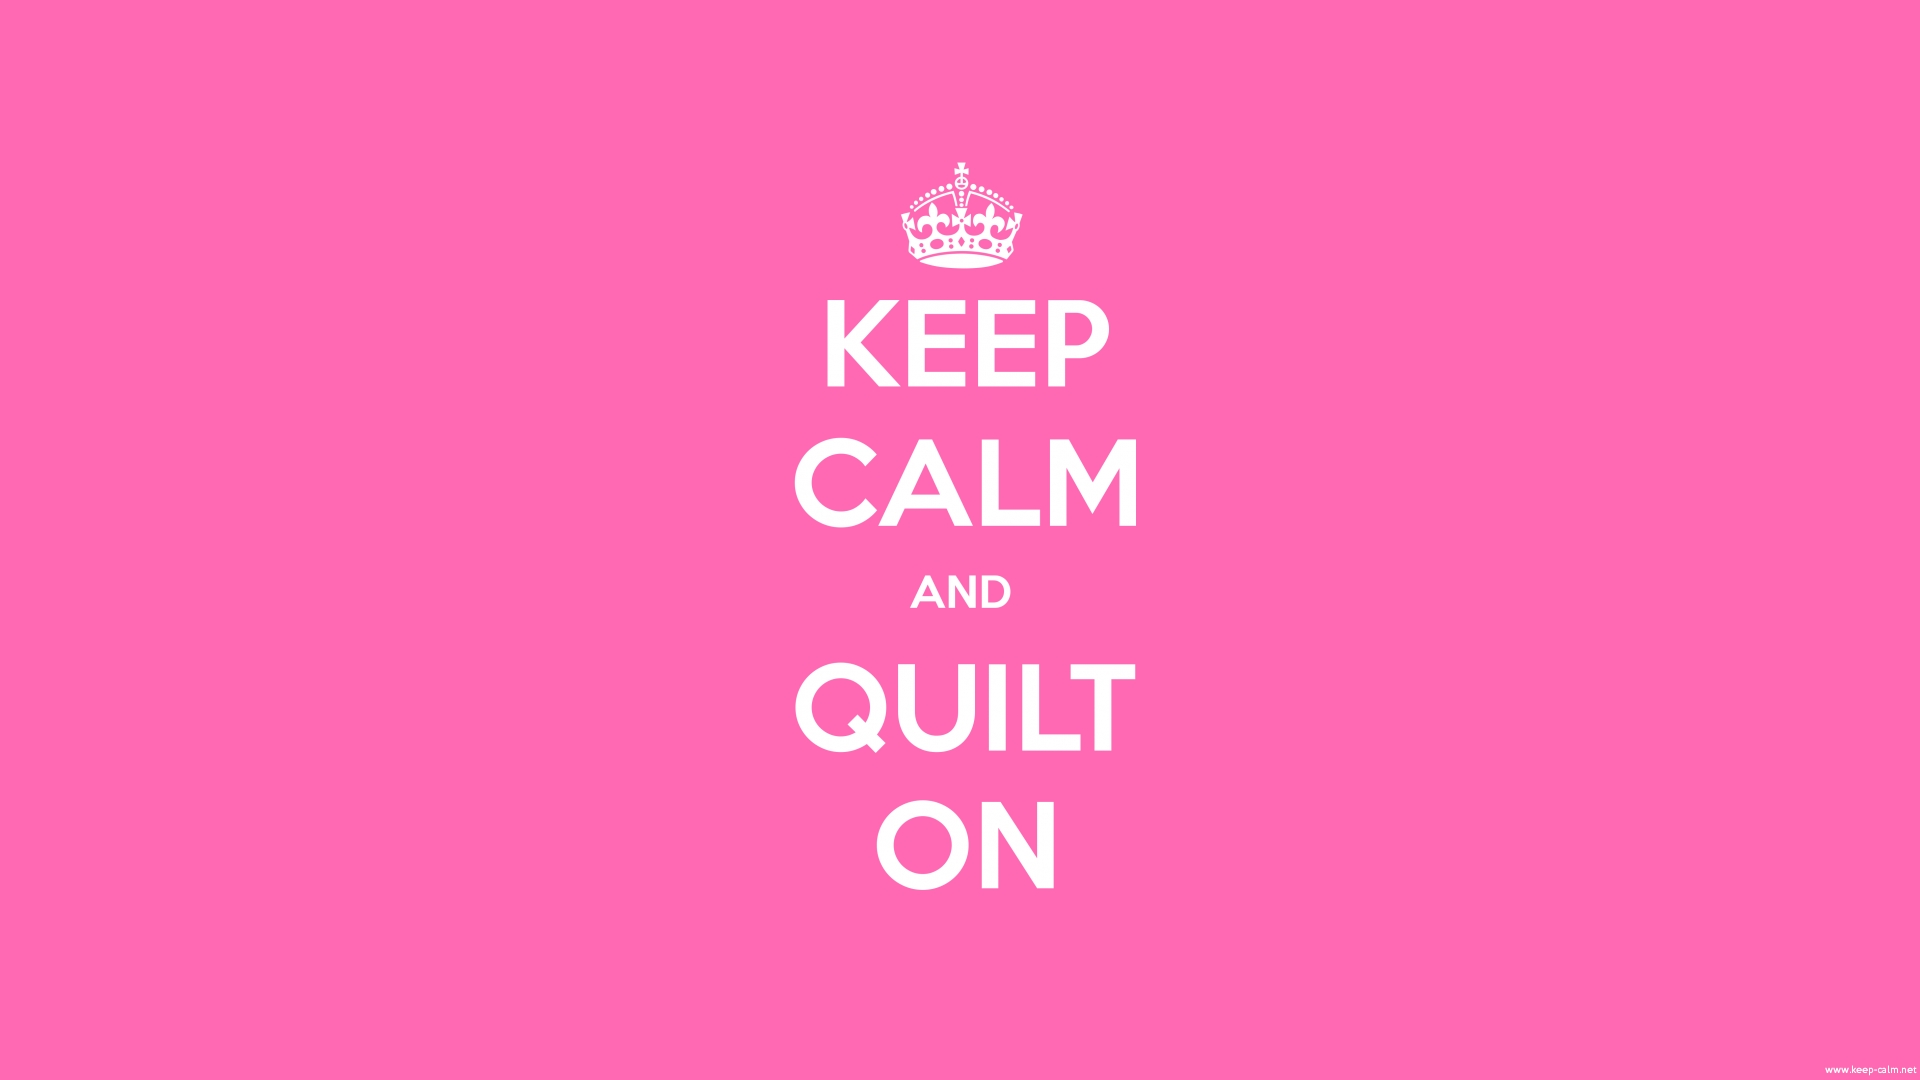 keep-calm-and-quilt-on-1920-1080-white-pink